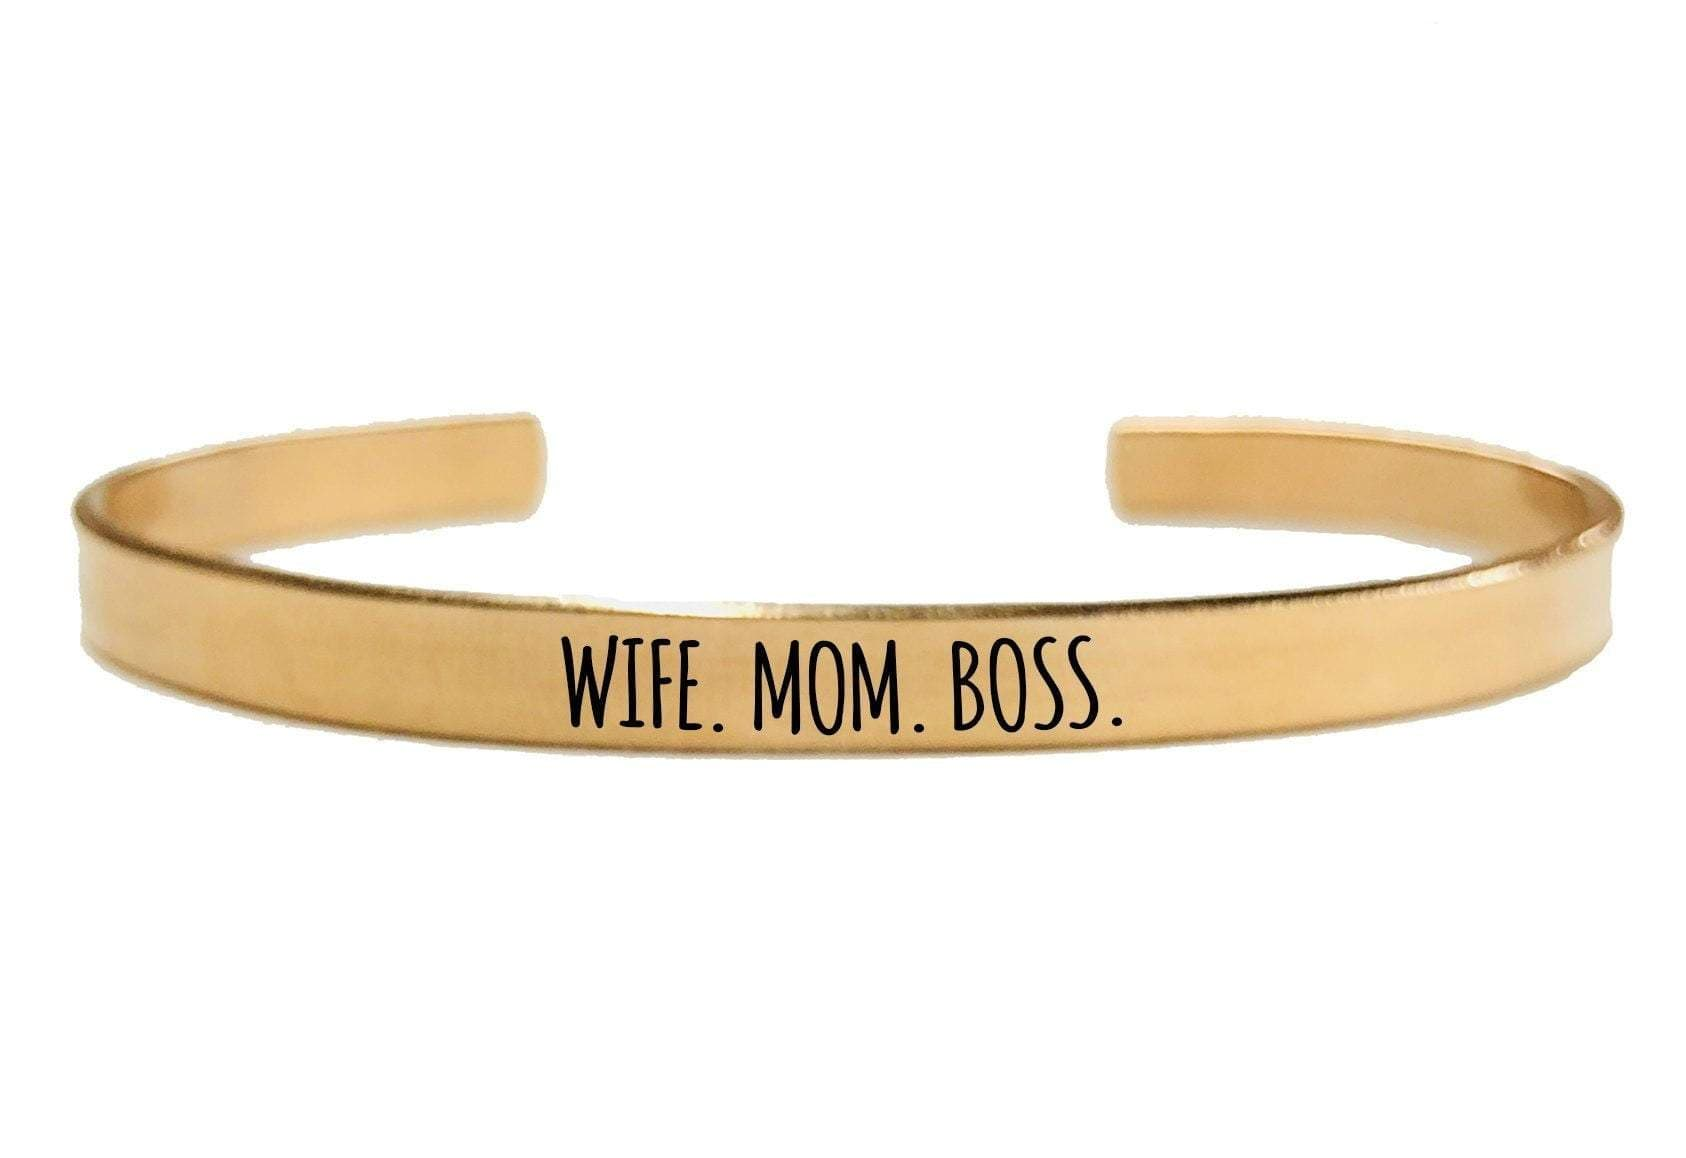 WIFE MOM BOSS CUFF BRACELET